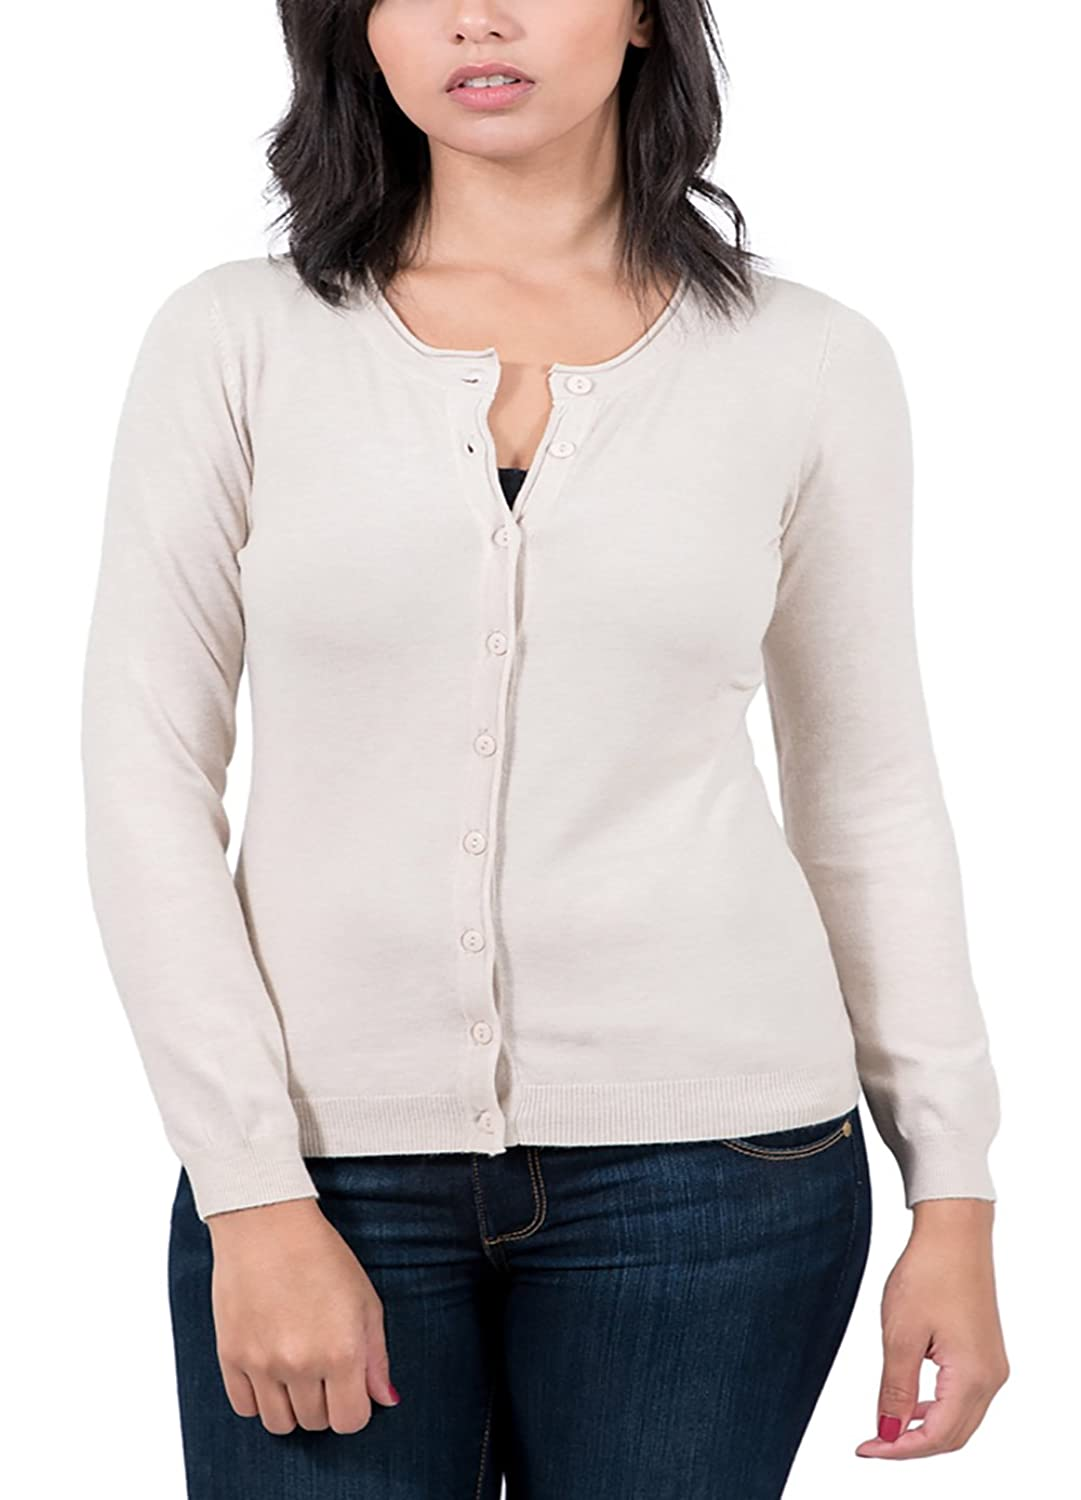 Real Cashmere Beige Cardigan Womens Sweater